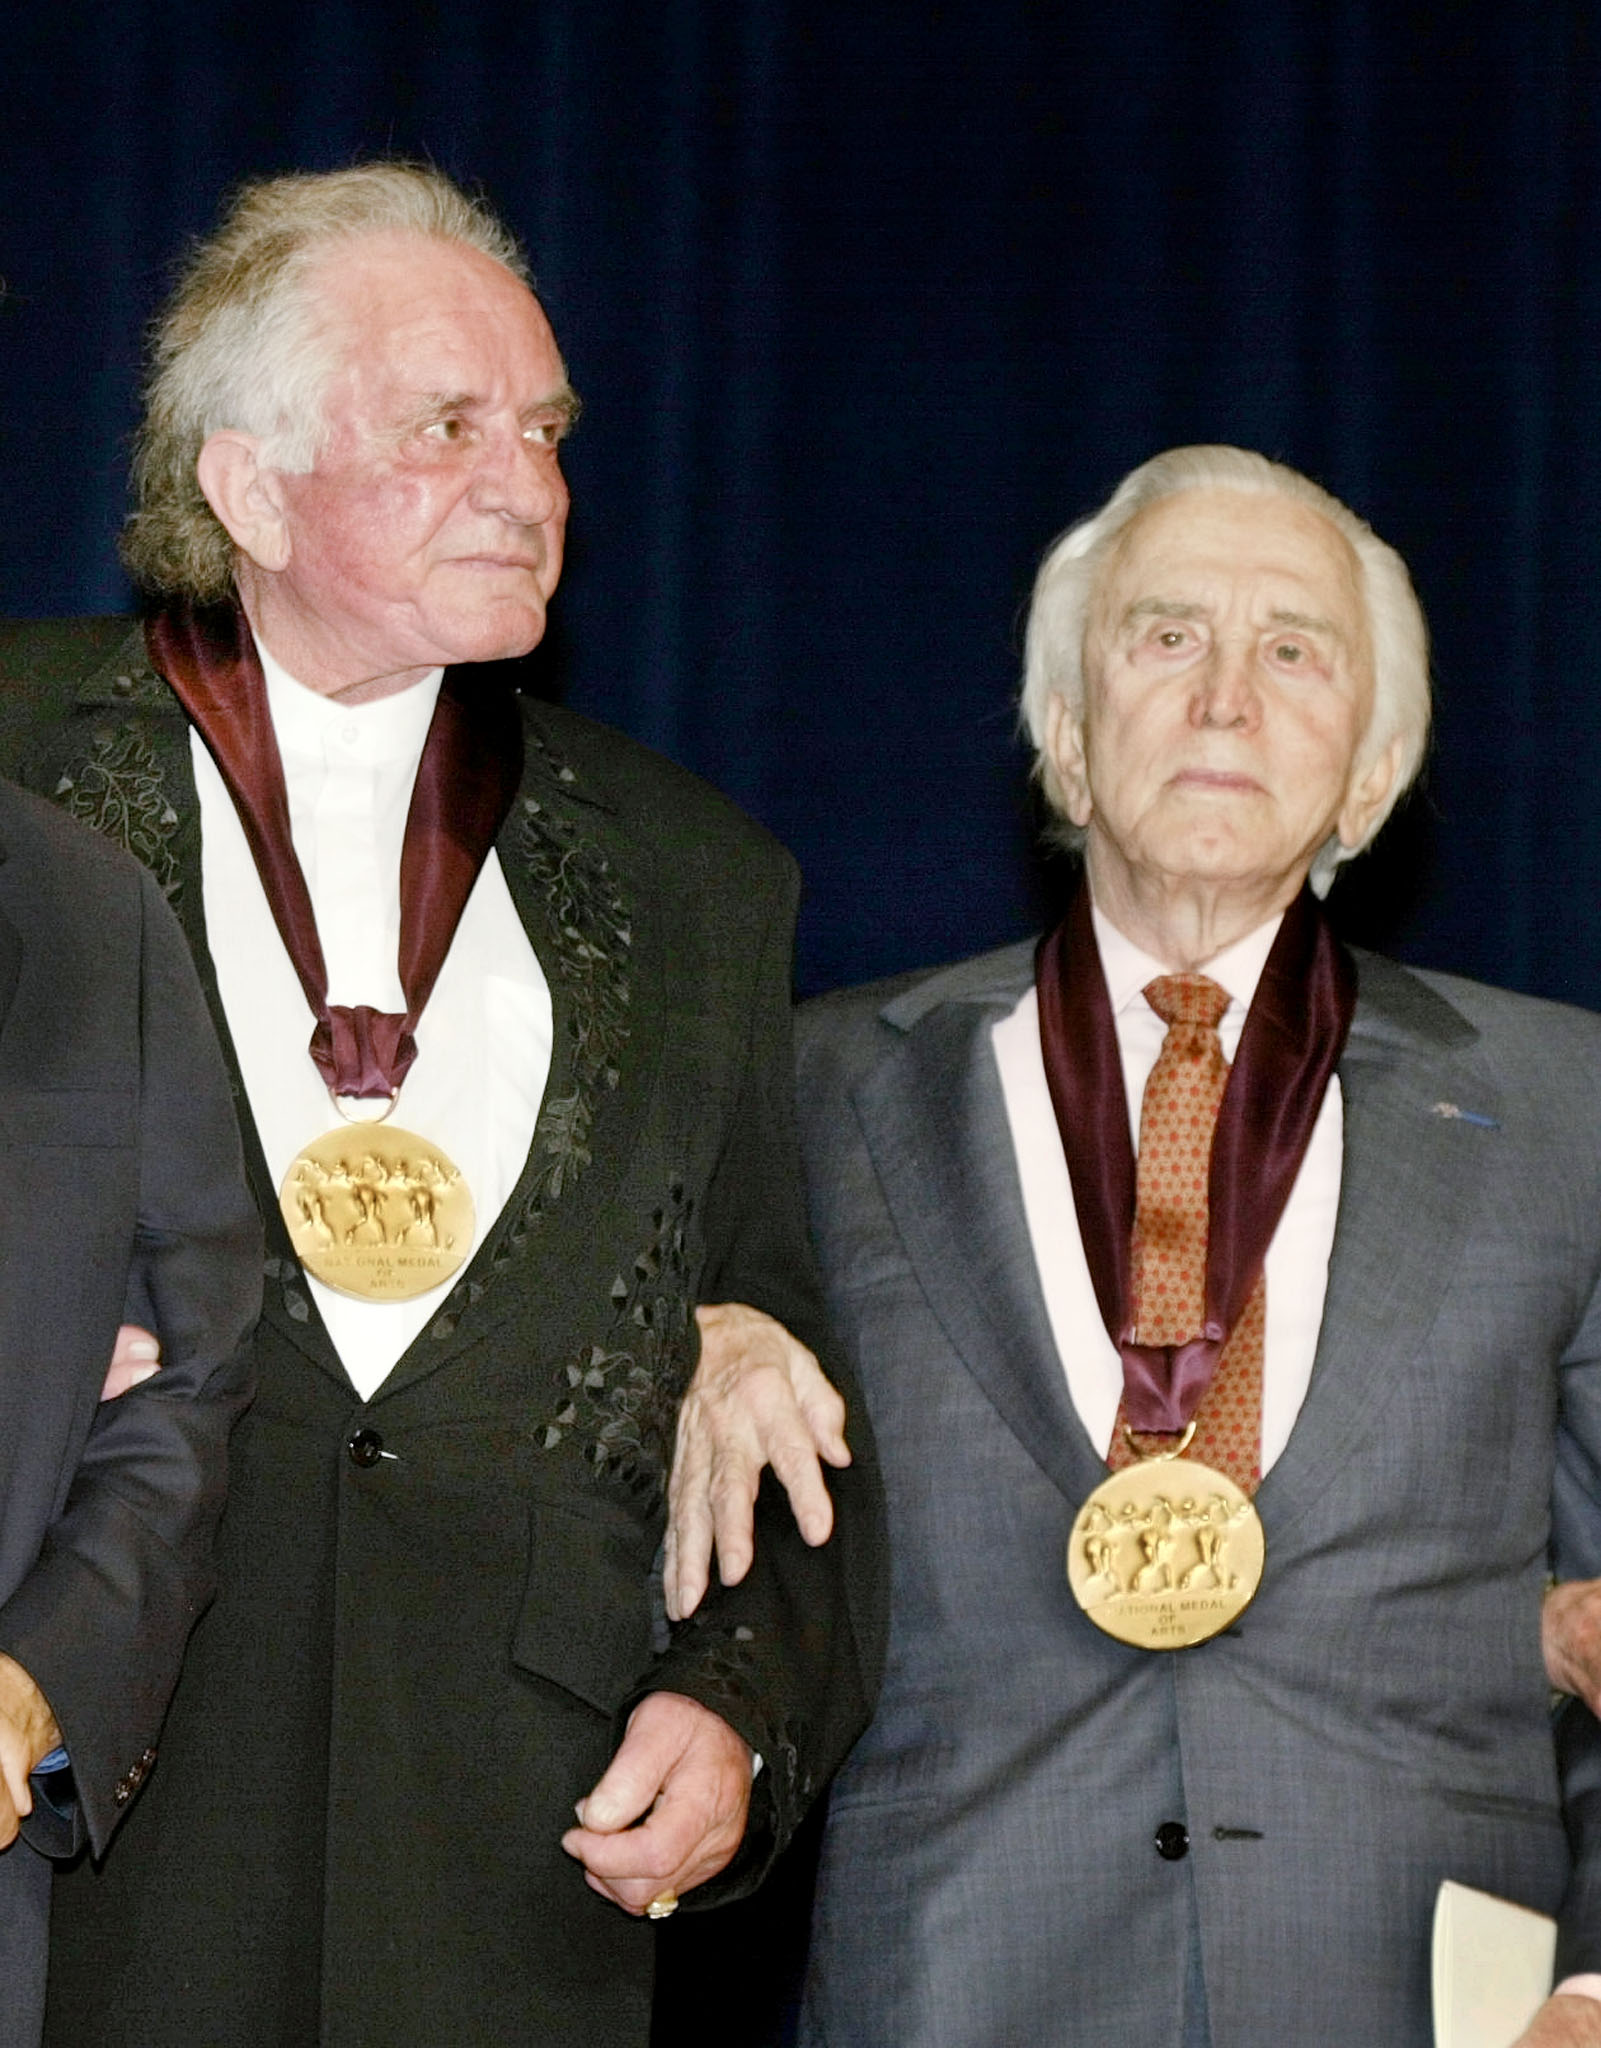 Singer Johnny Cash (L) and actor Kirk Douglas stand together after receiving the National Medal of Arts from U.S. President George W. Bush in Washington, April 22, 2002. The president and first lady attended the event. REUTERS/Larry Downing  LSD/ME - RTR43JB